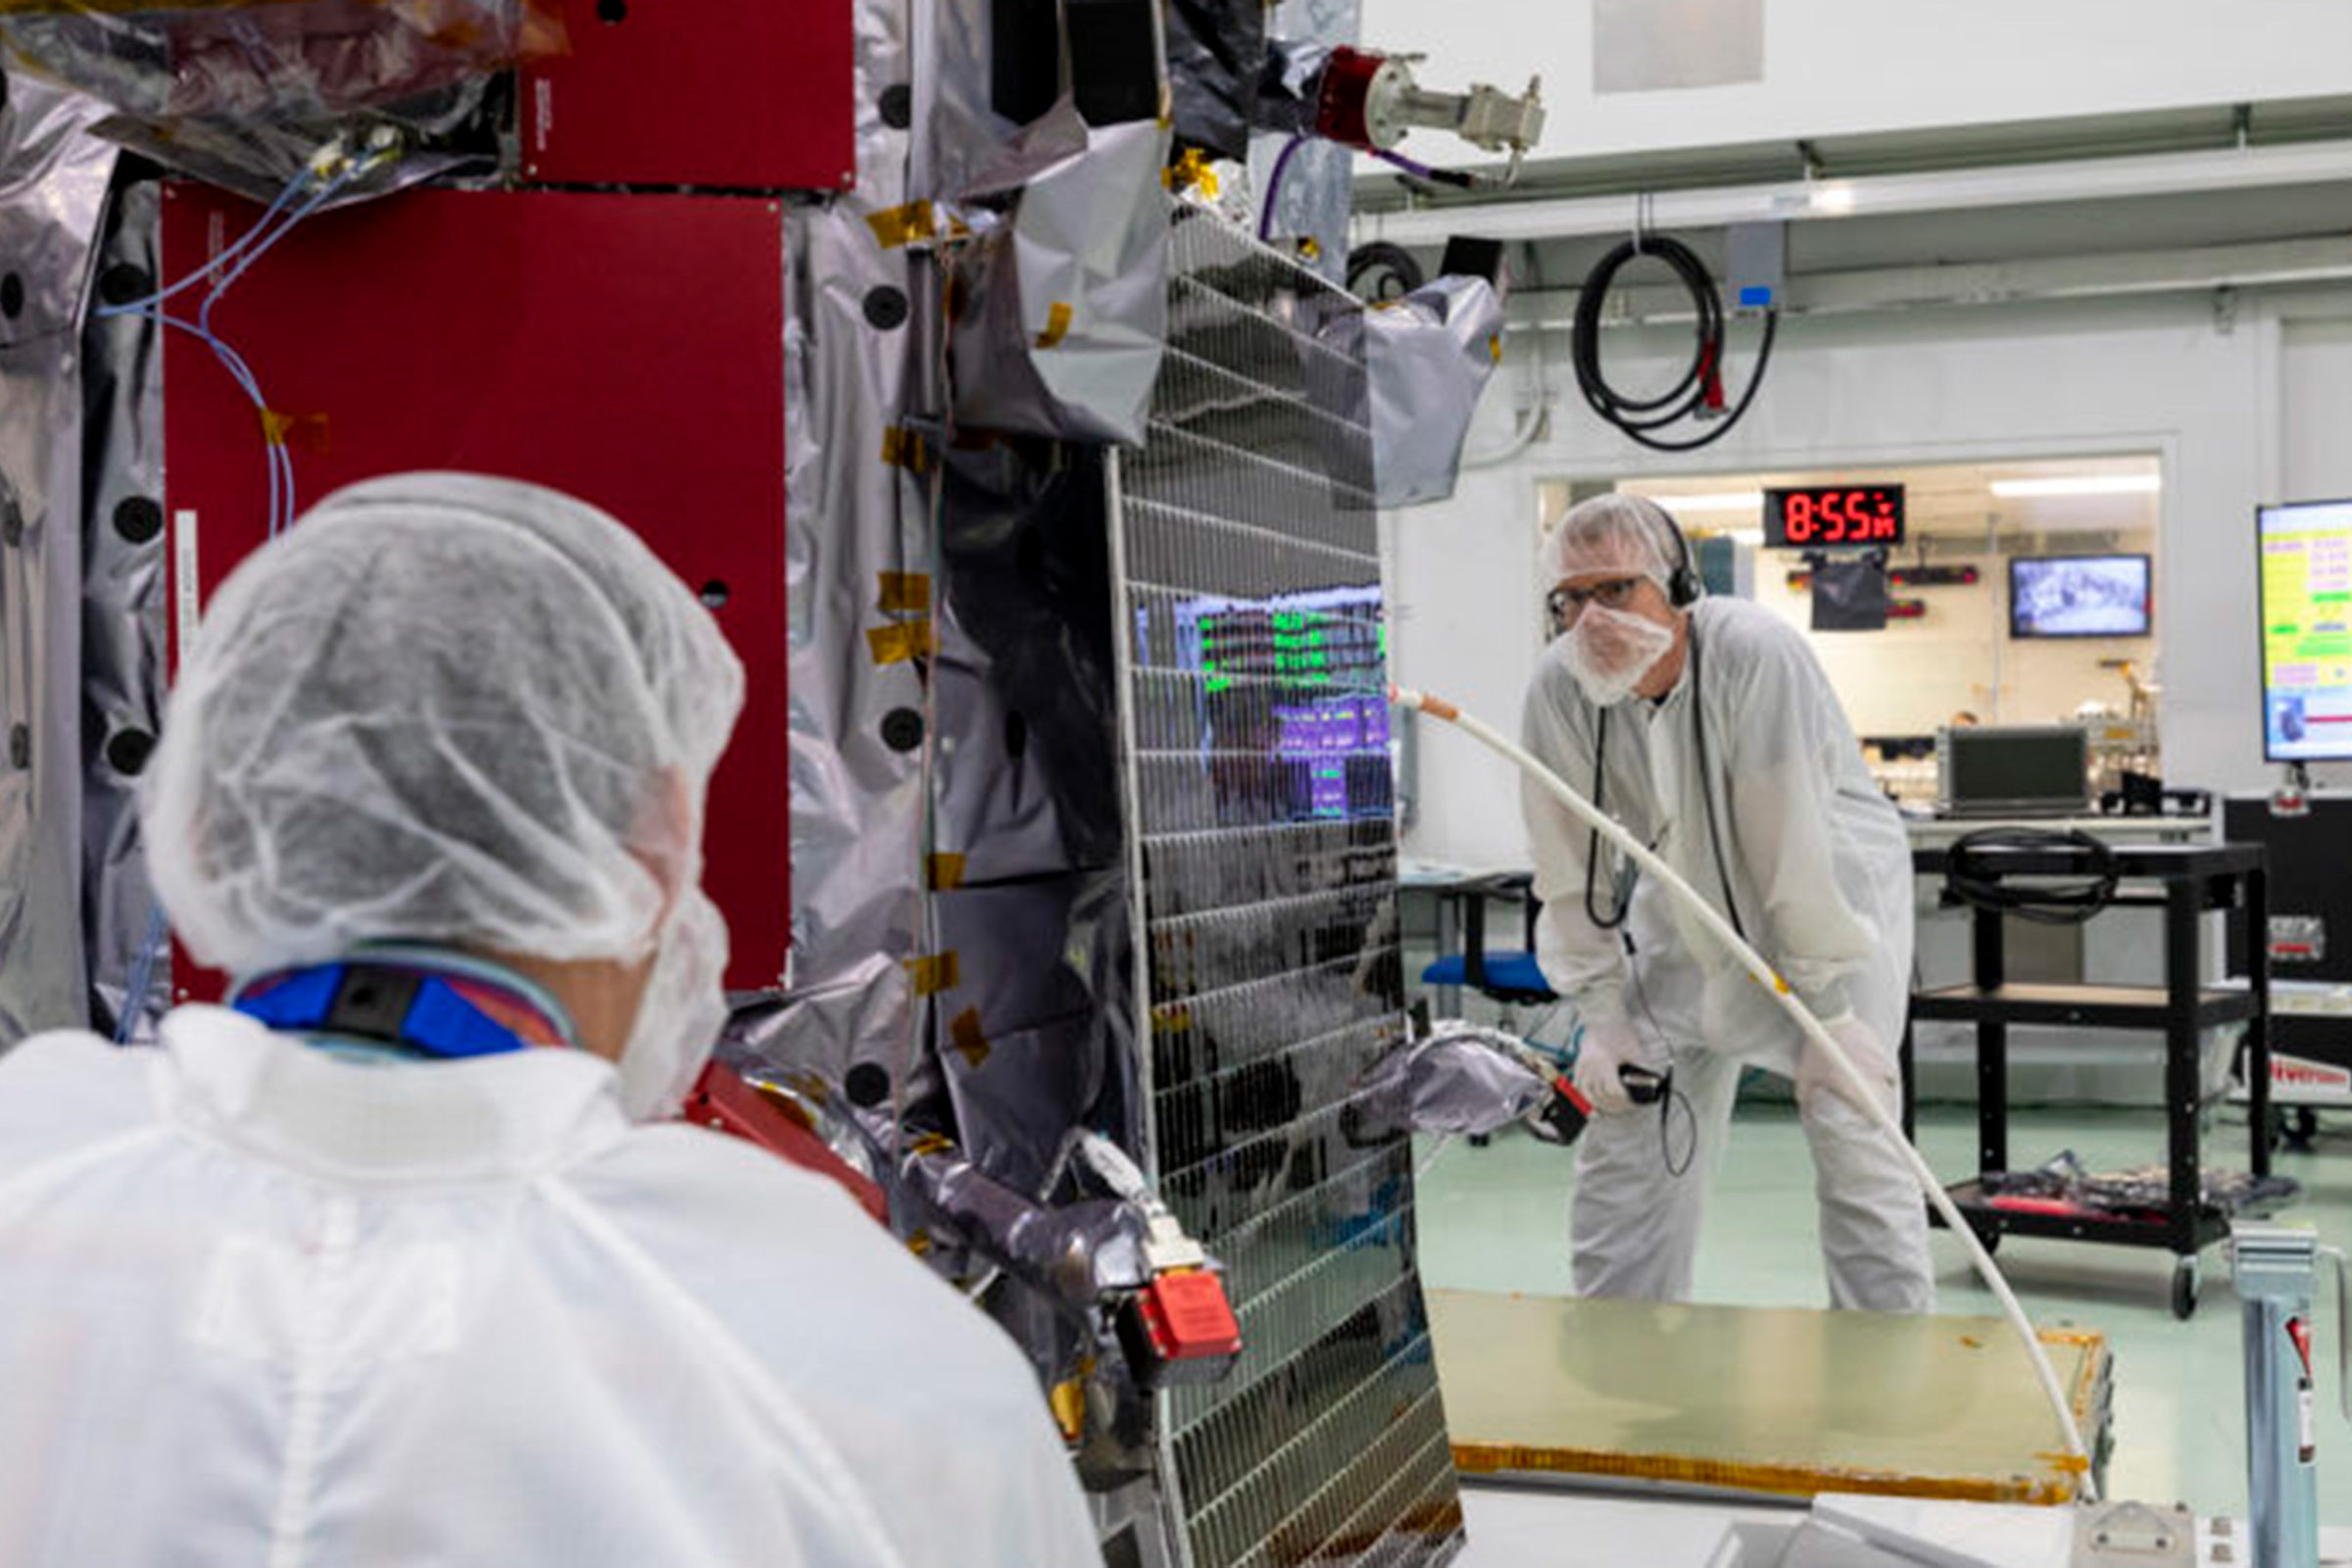 Members of the Parker Solar Probe team examine and align one of the spacecraft's two solar arrays on May 31, 2018. Credit: NASA/Johns Hopkins APL/Ed Whitman